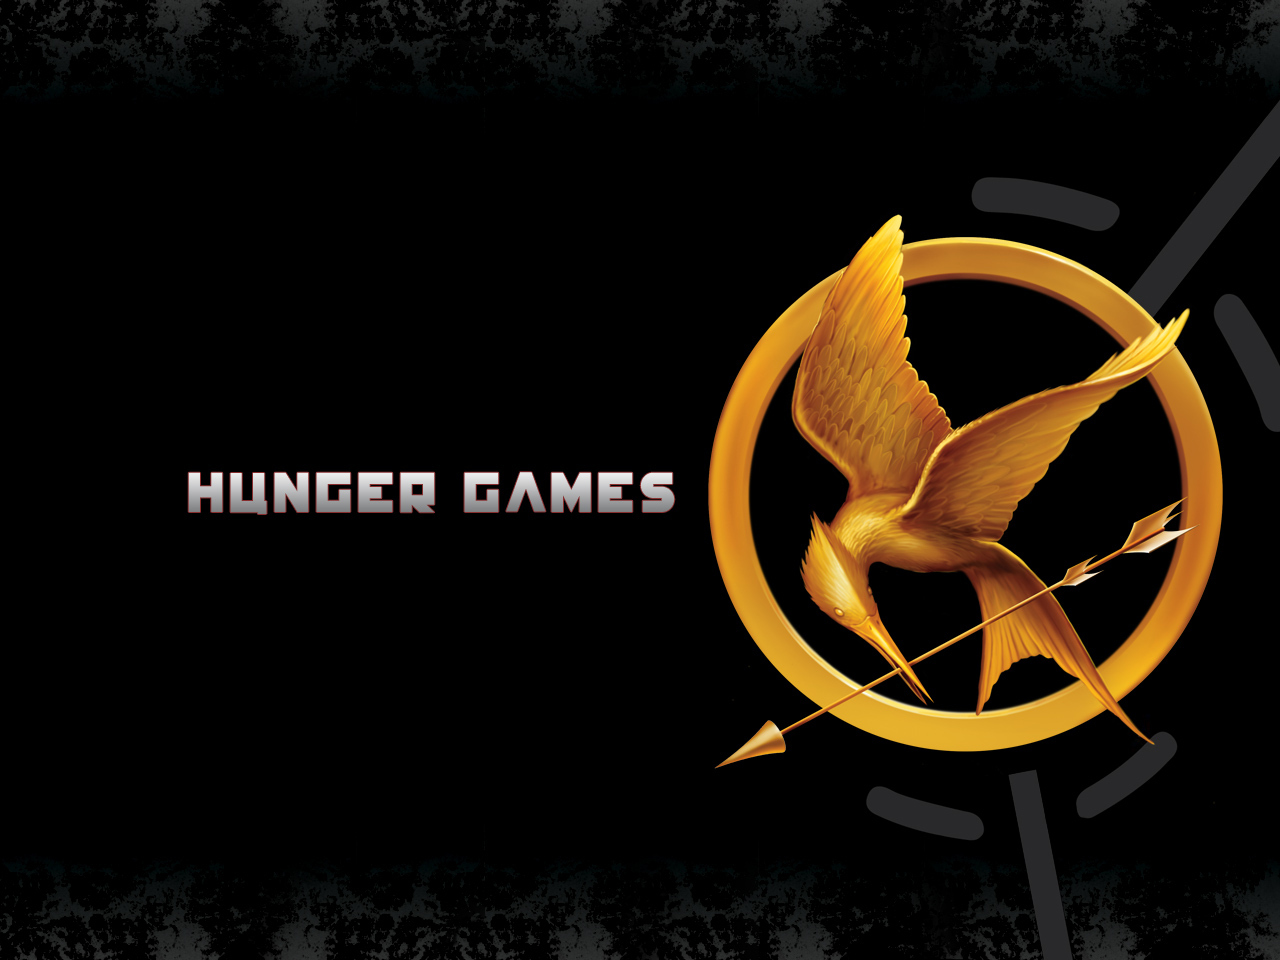 The Hunger Games - The Hunger Games Wallpaper (2624991) - Fanpop